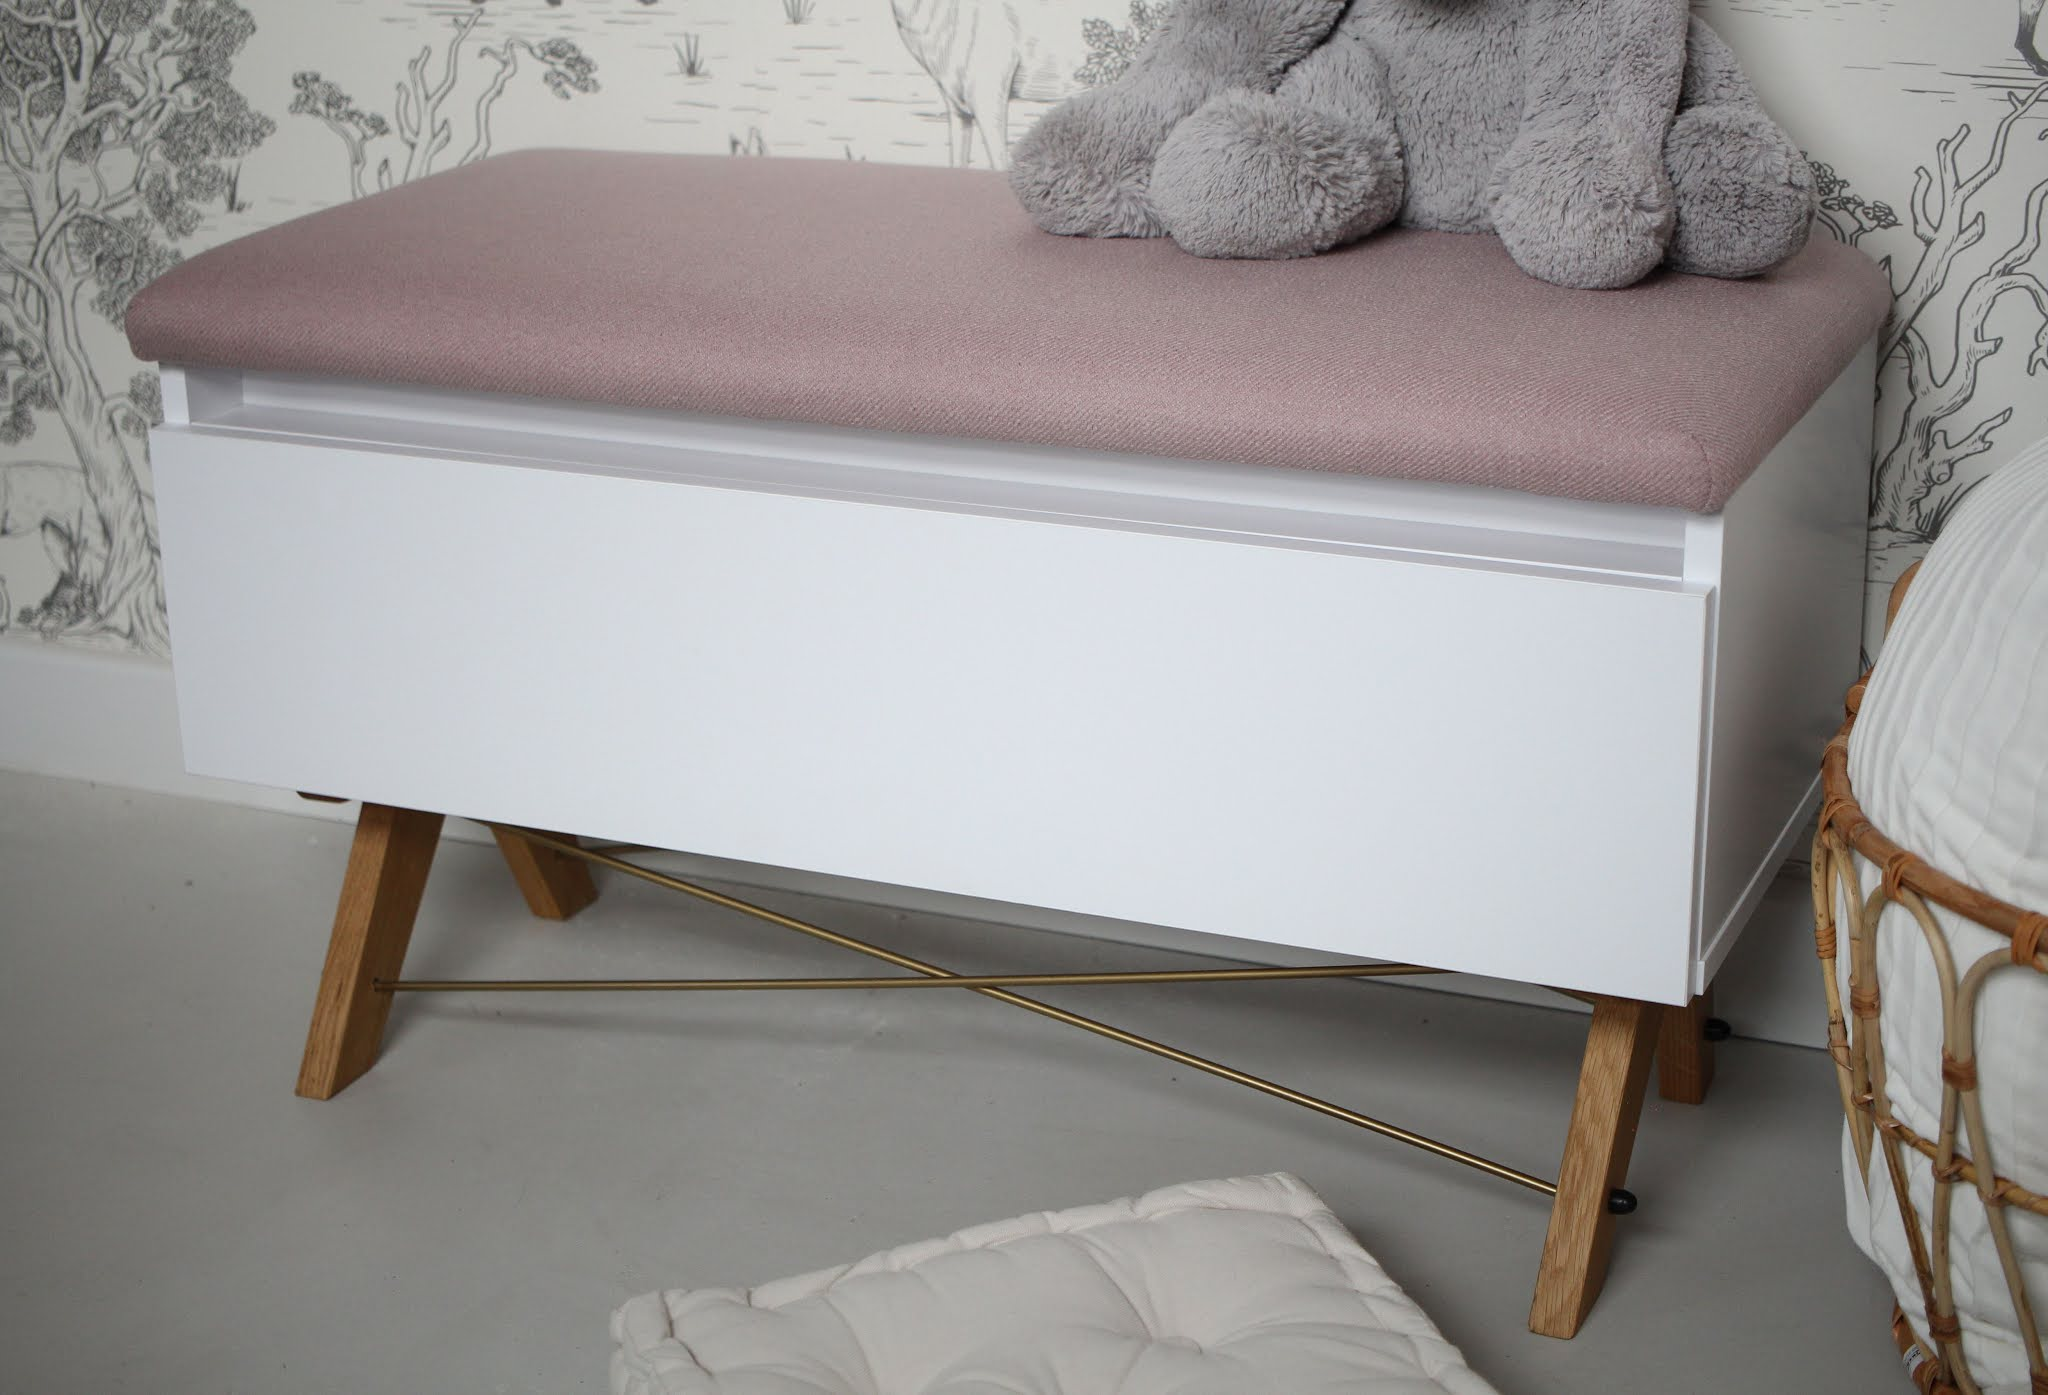 Storage chest bench for bedroom